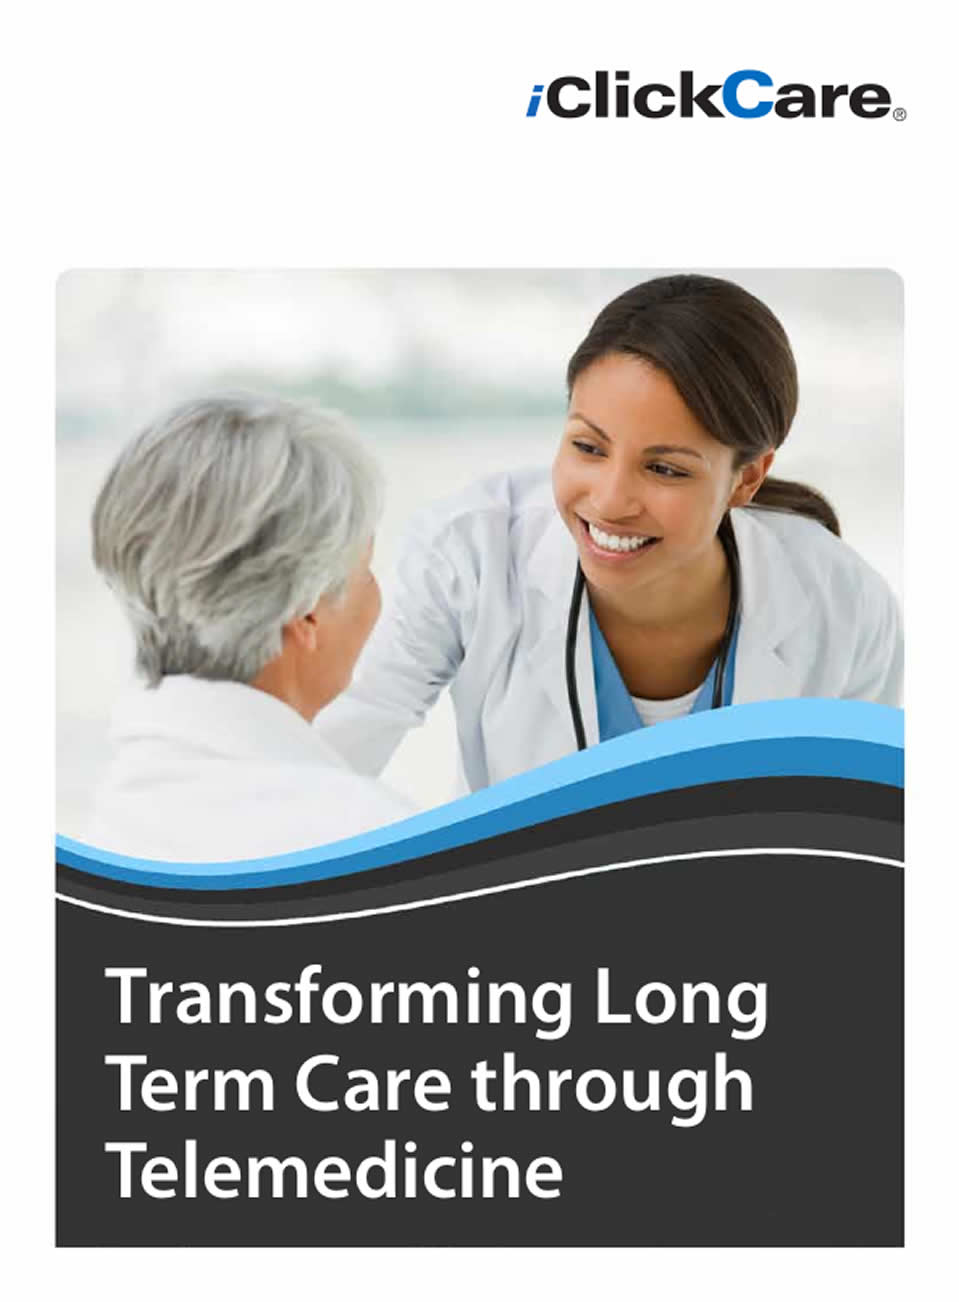 iClickCare and Long Term Care